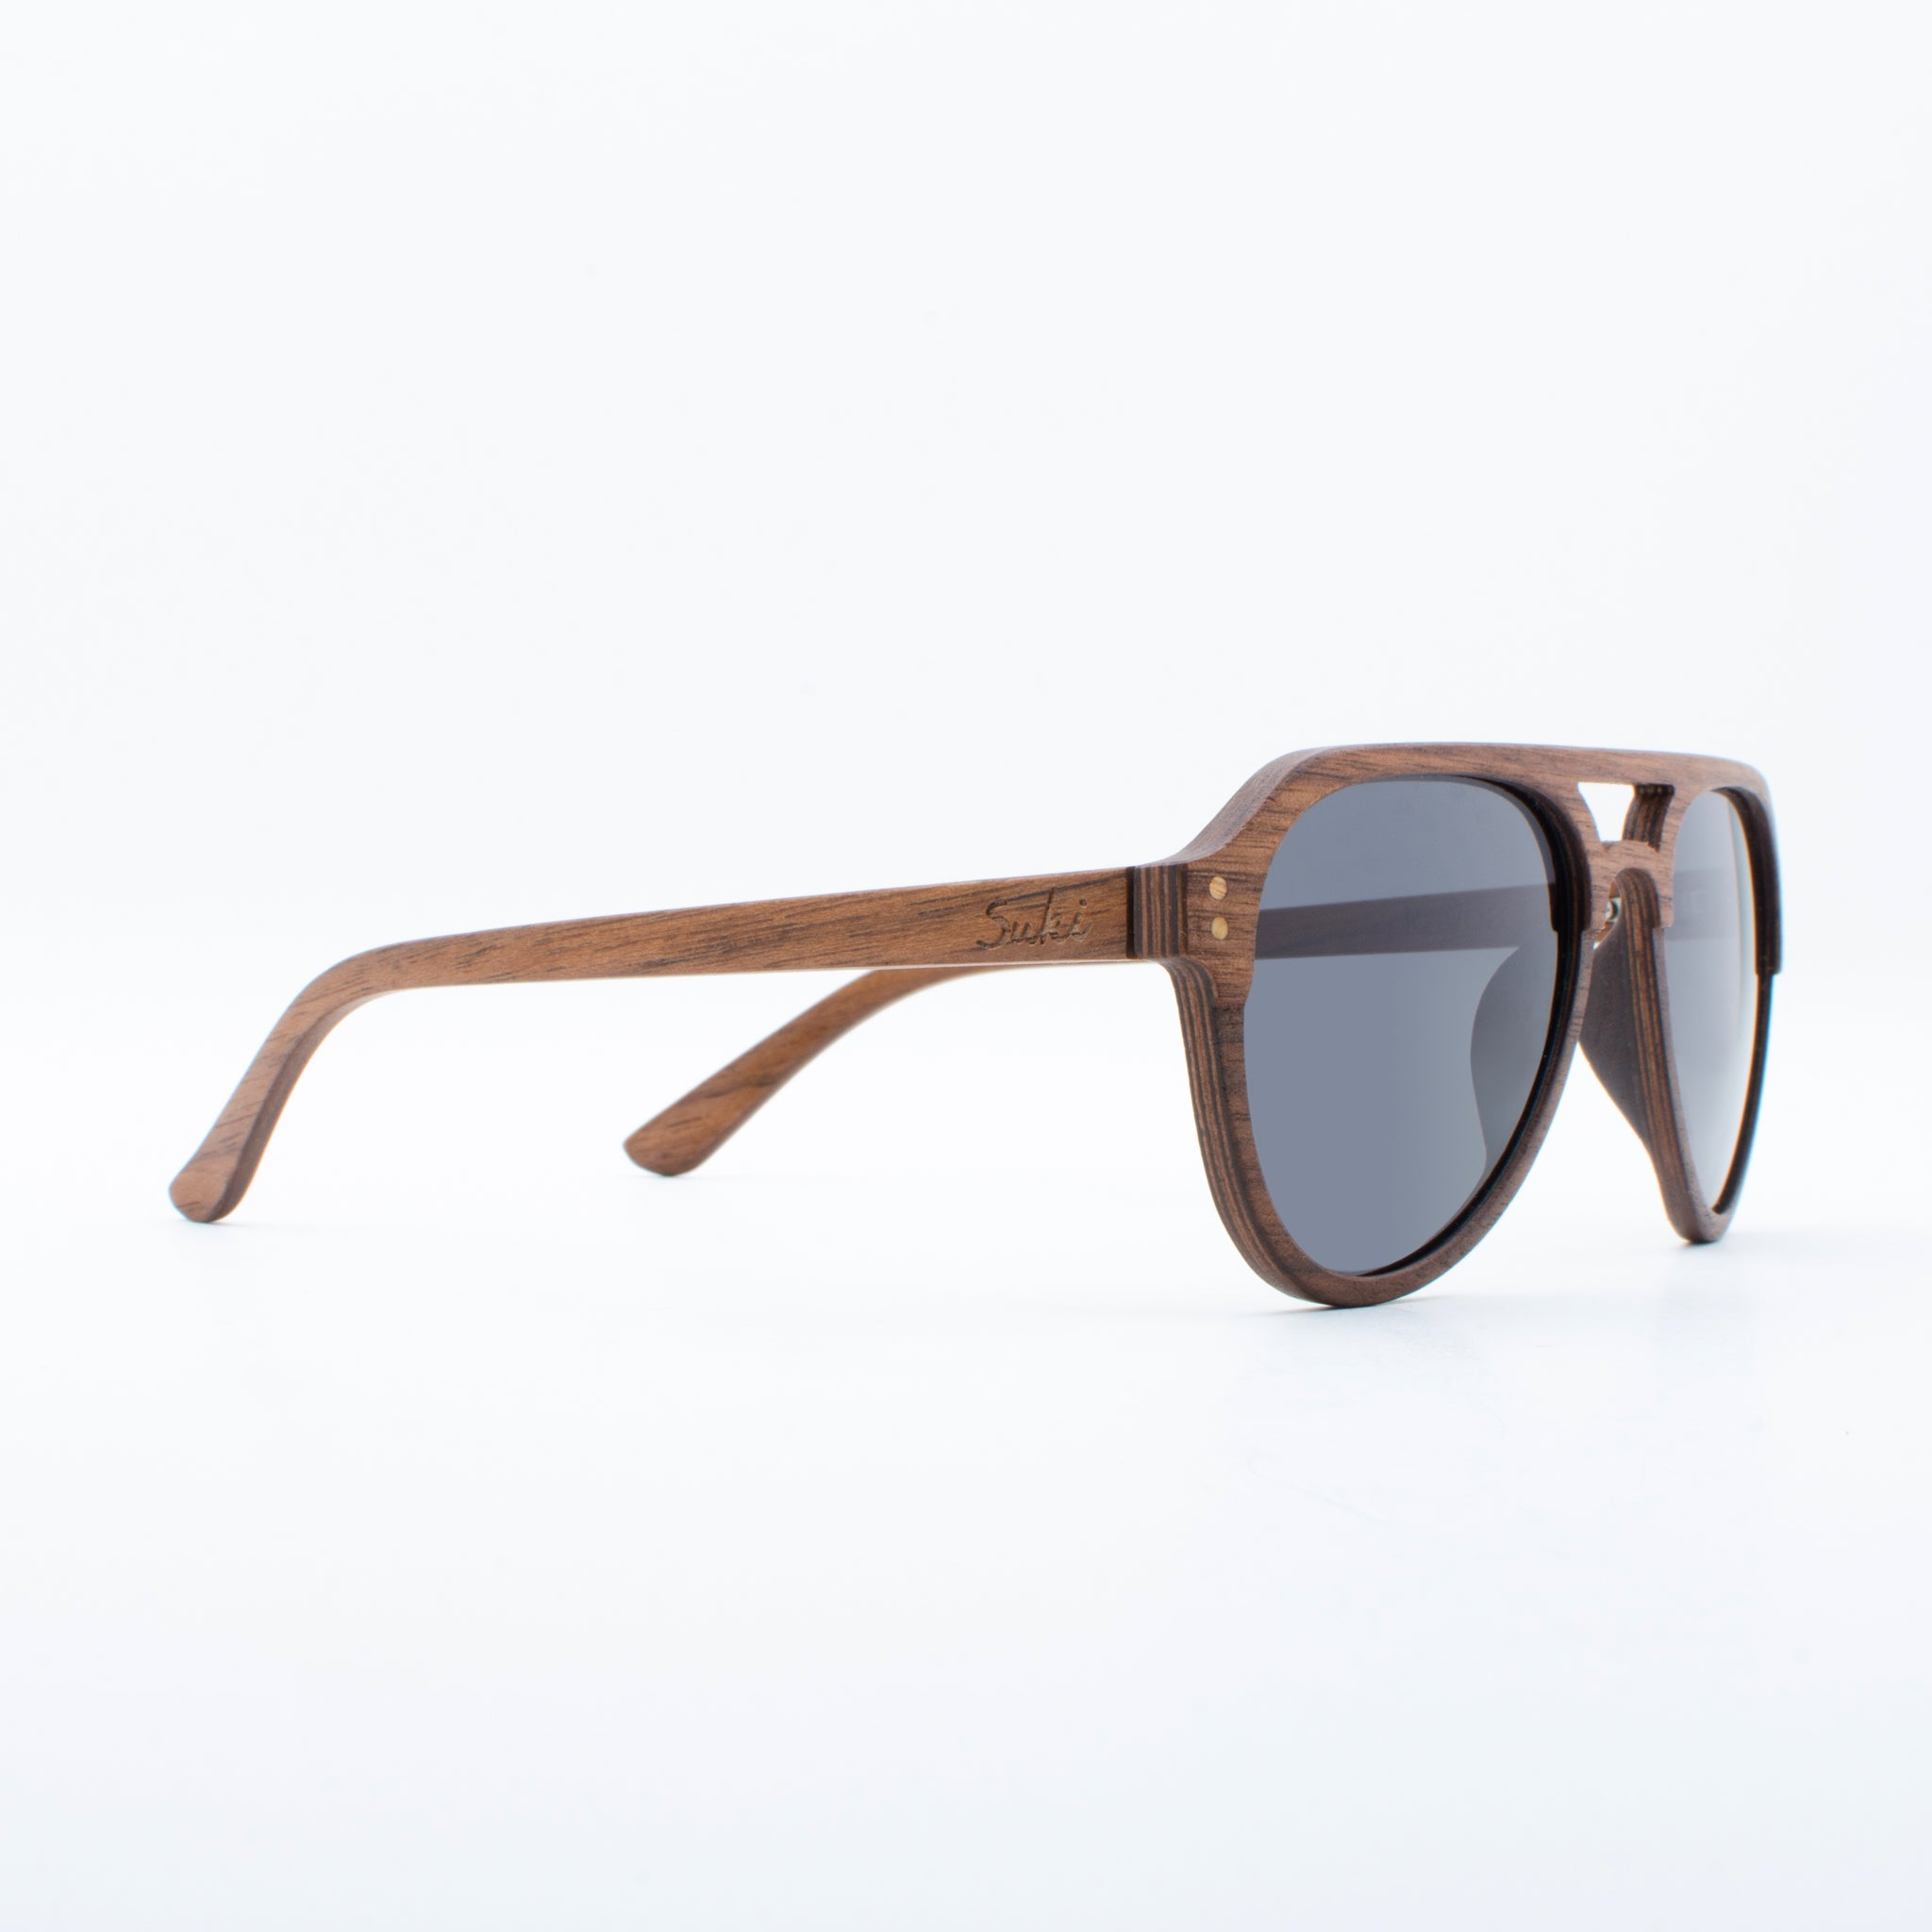 WOODEN SUNGLASSES KAYOA WALNUT SUKI